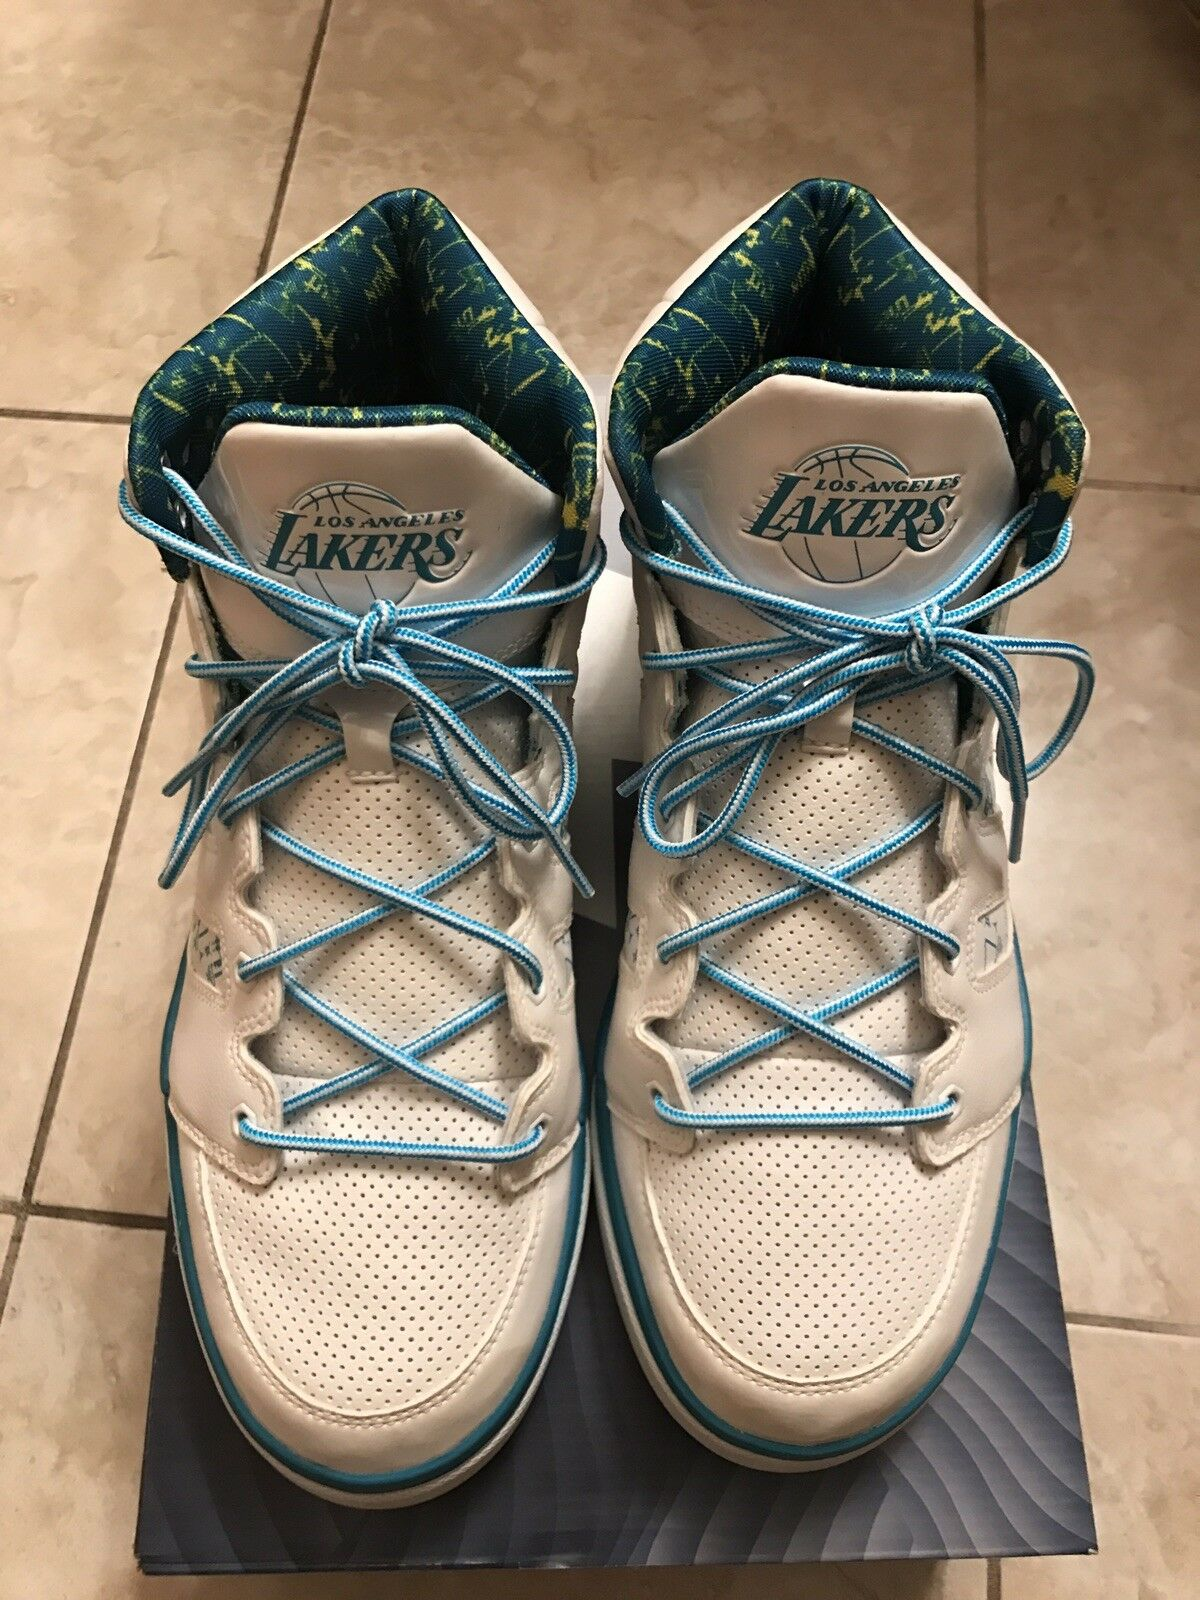 ADIDAS LA LAKERS NBA Rare  Size 11 Lux 8-bit Teal White Basketball shoes Kobe